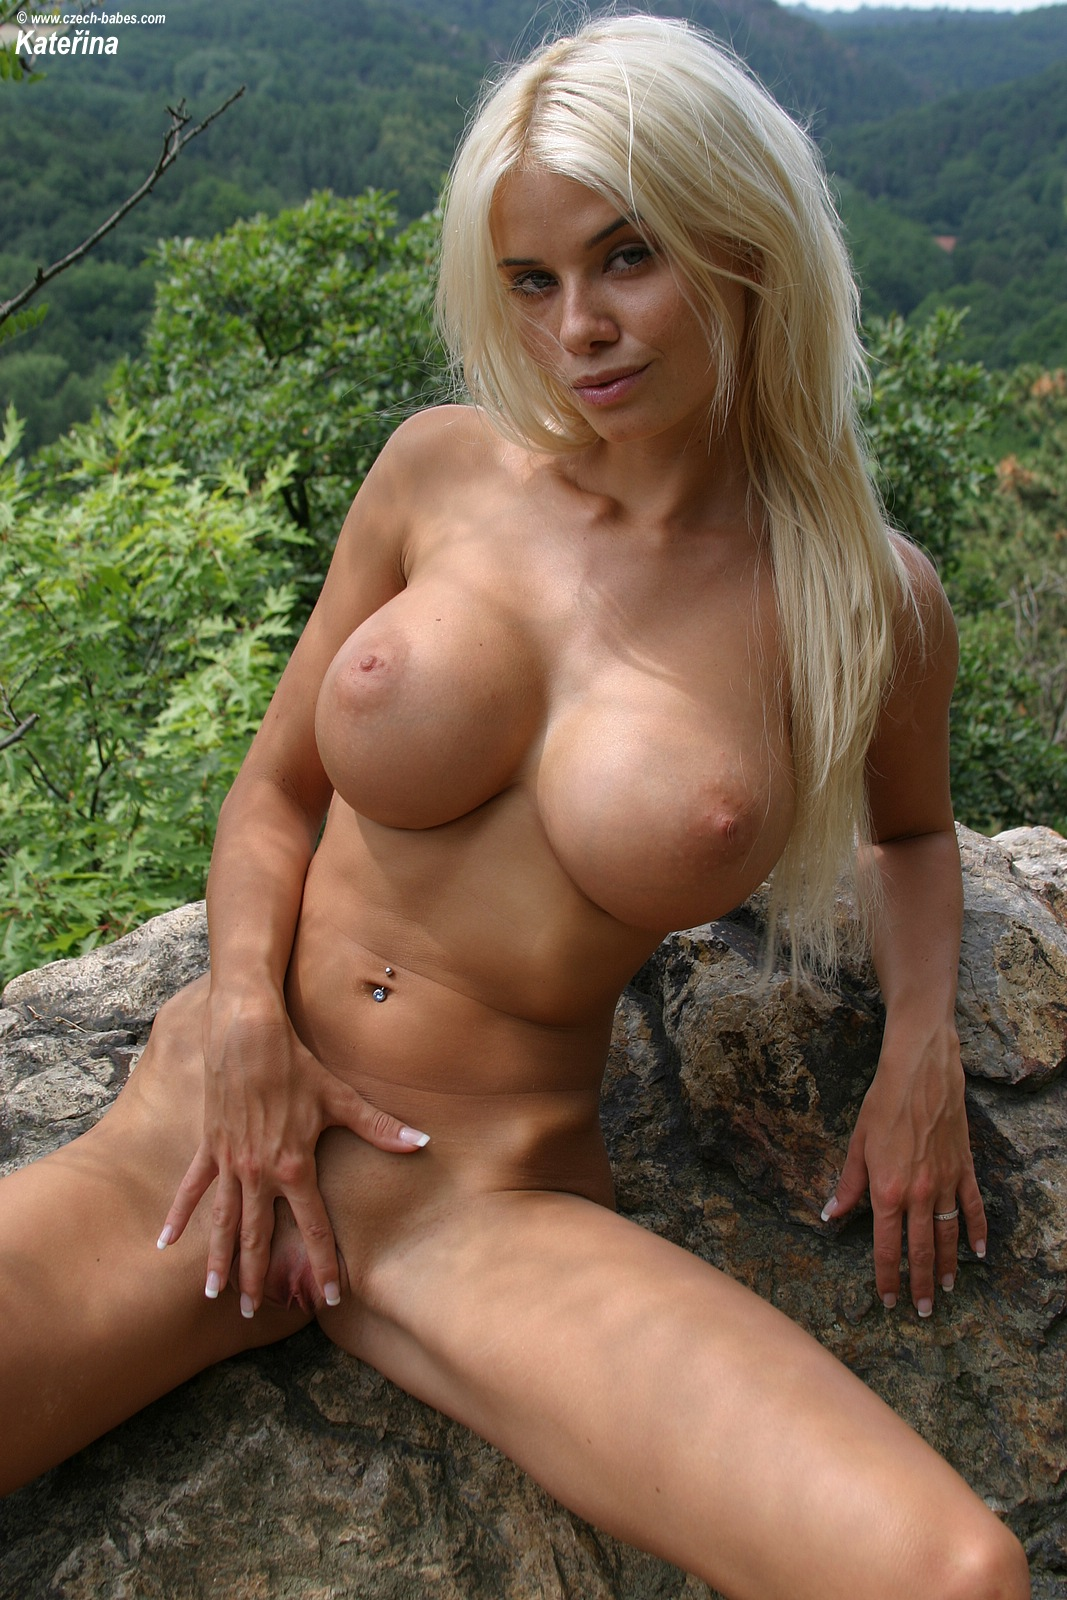 katerina-nude-mountain-lingerie-huge-tits-blonde-20